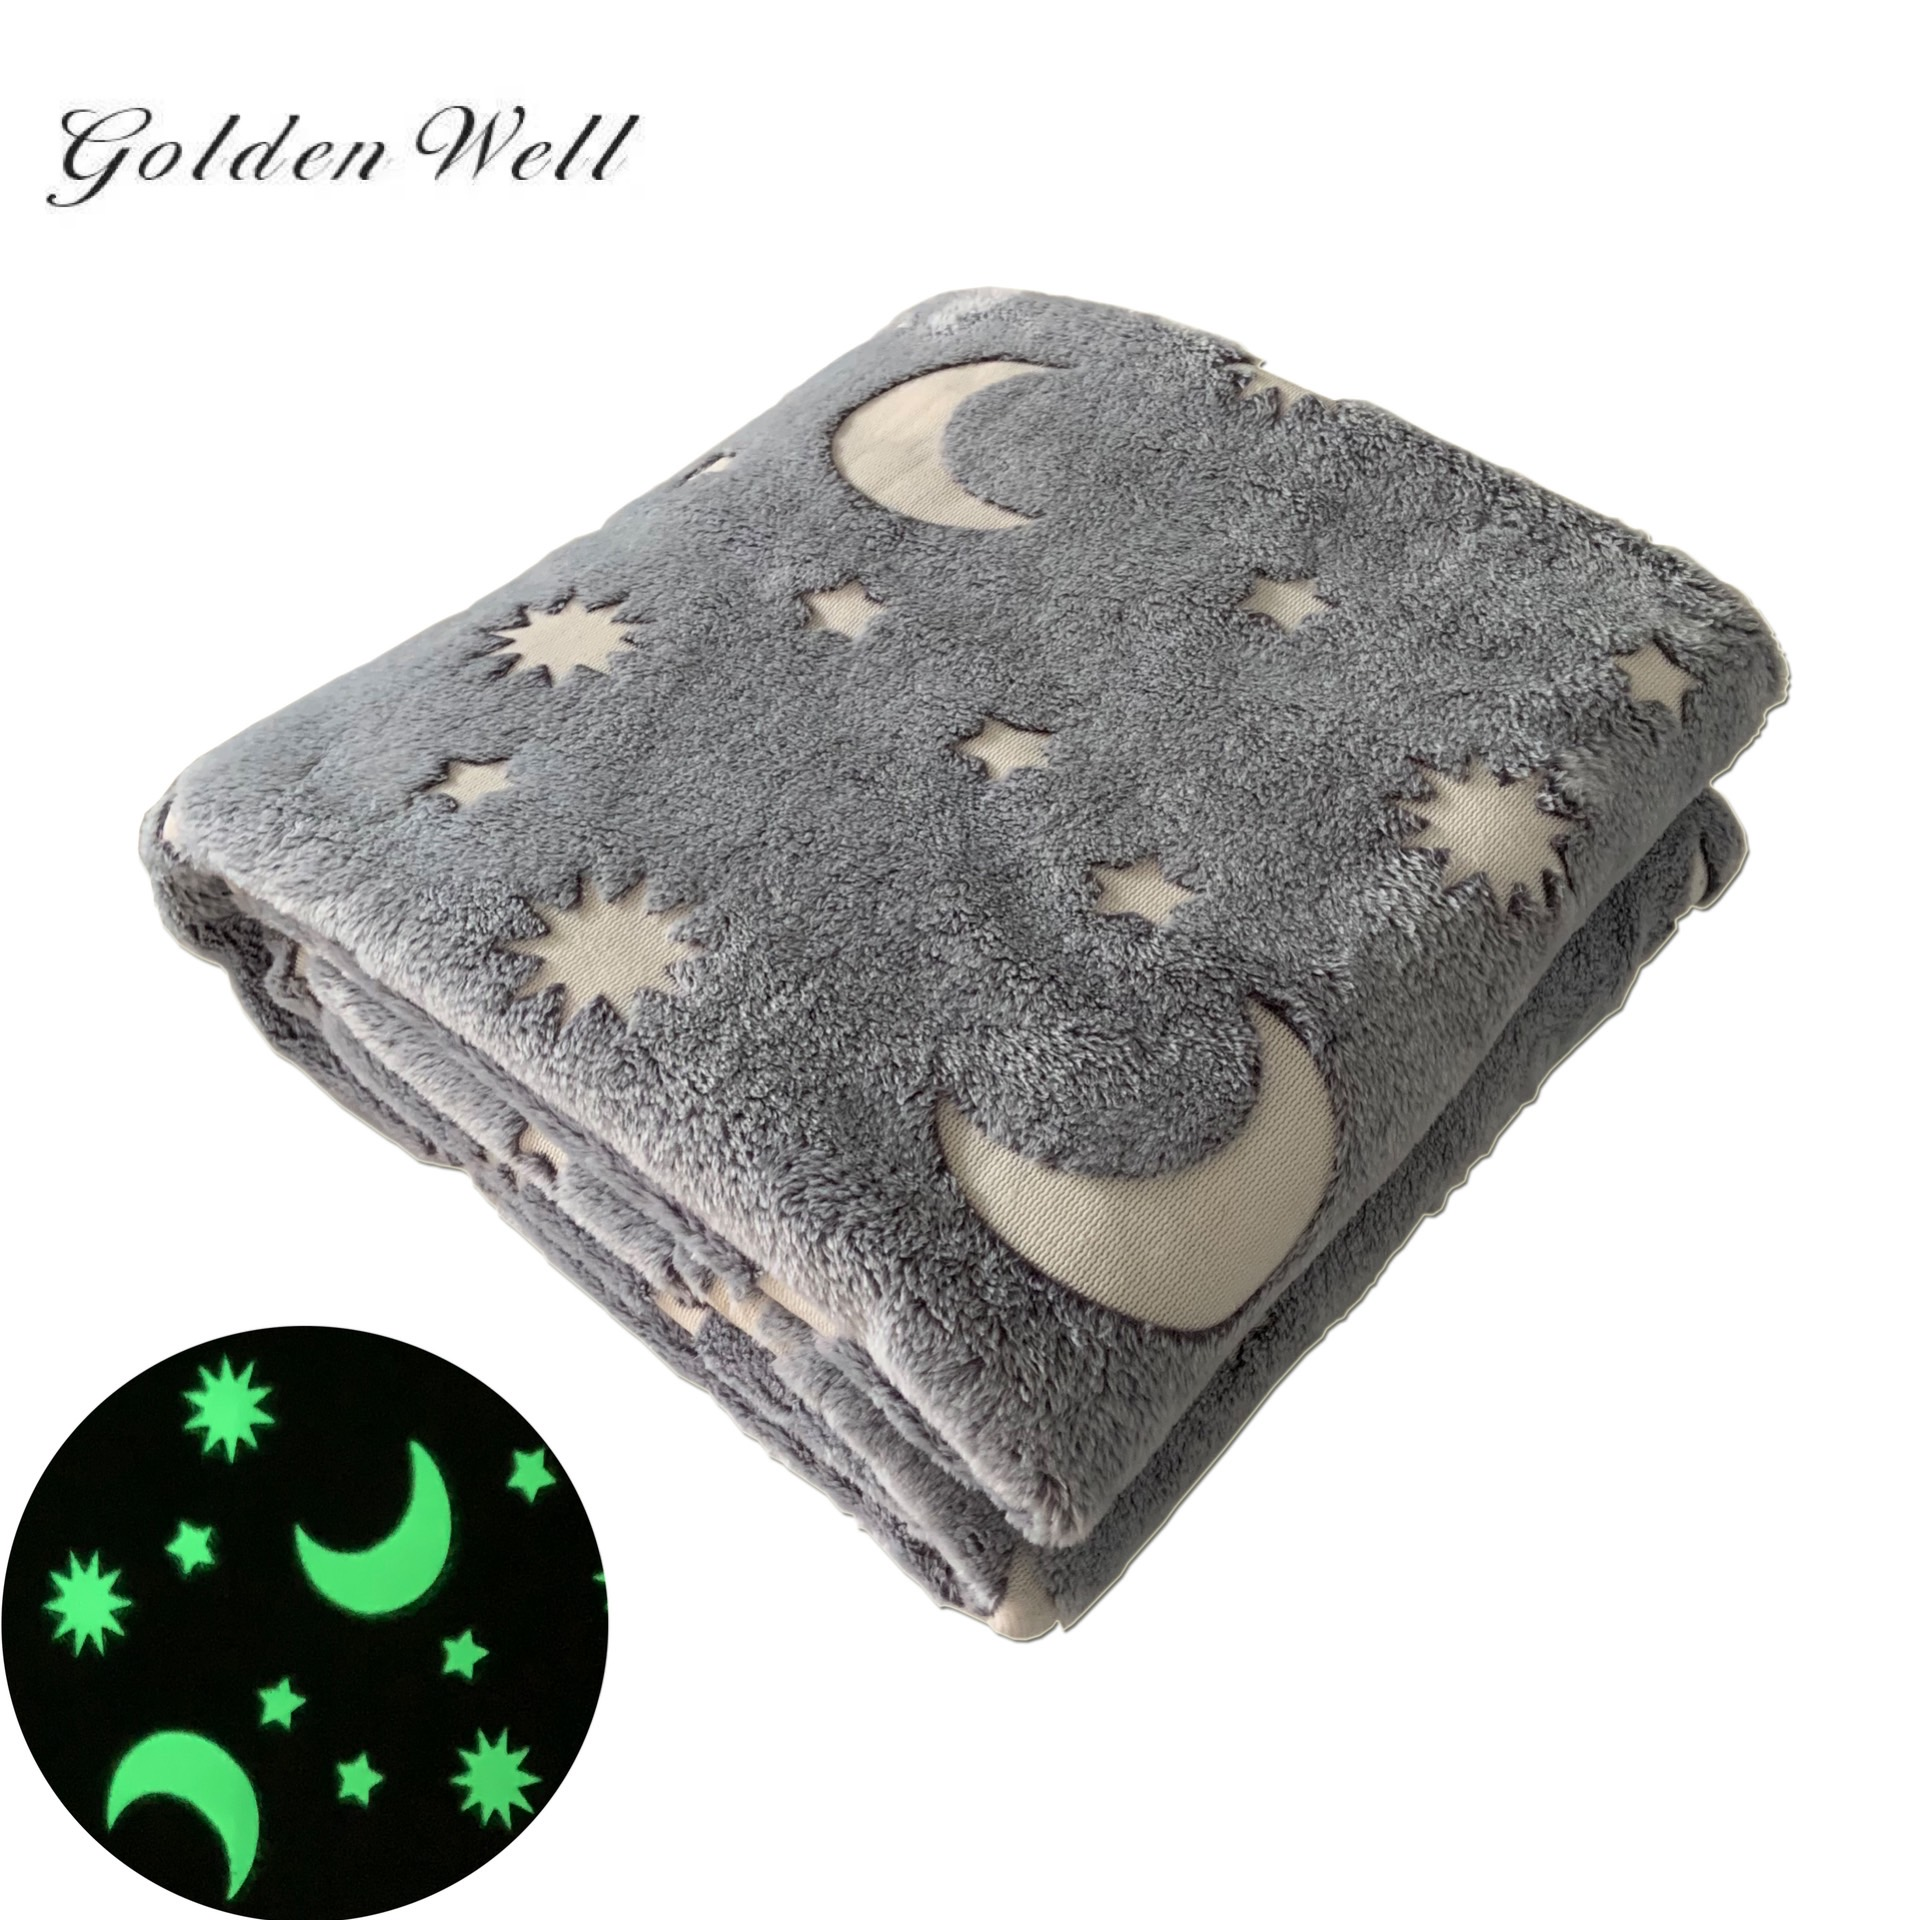 Healthy and Soft Flannel Fleece Blanket Glow in The Dark Blanket with Star Moon Fun Gift for Kids Boys Girls